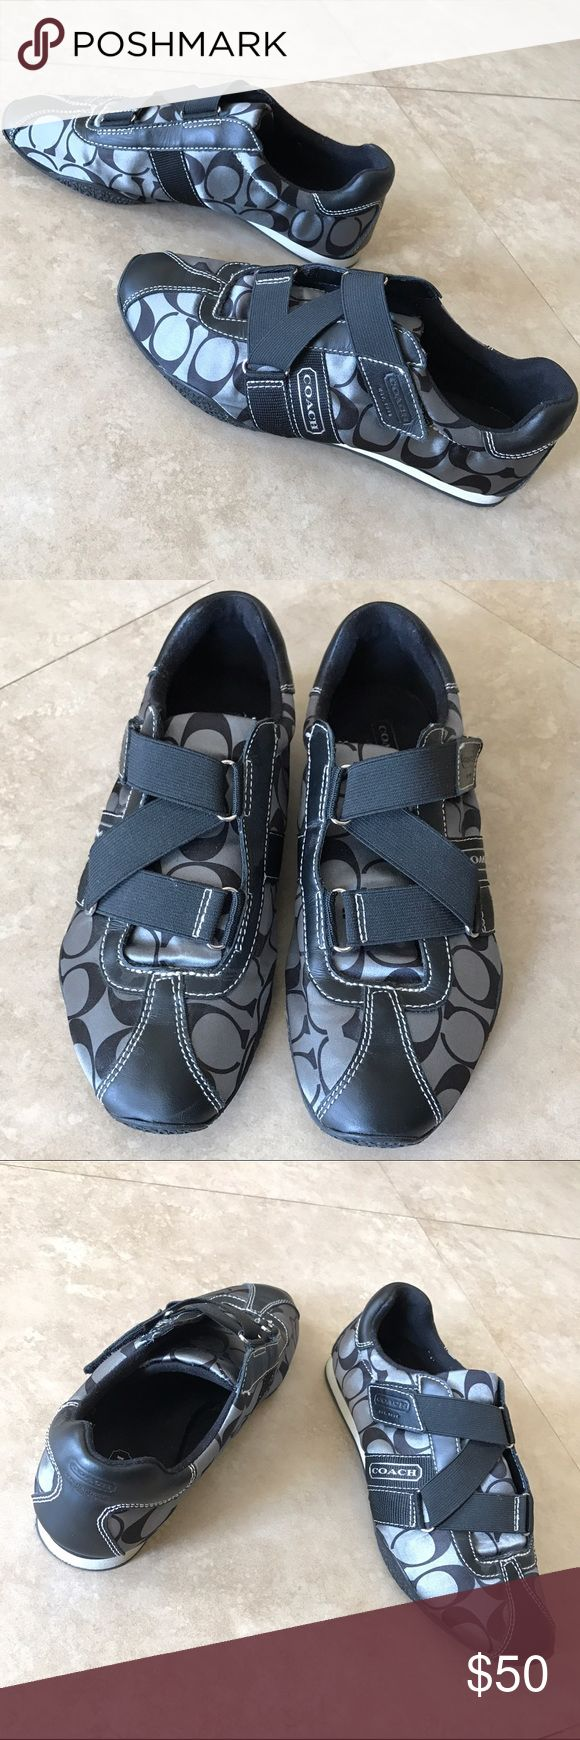 Coach shoes black & gray velcro strap no laces 8M Coach sneakers 👟 simple elegant and very comfy black and grayish, no laces!! Velcro straps. Like brand new!! Worn twice only. Size 8M. Wear them with skinny jeans or shorts and for a sporty tho elegant outfit, imagine how cute they will look with a dress 👗 Coach Shoes Sneakers